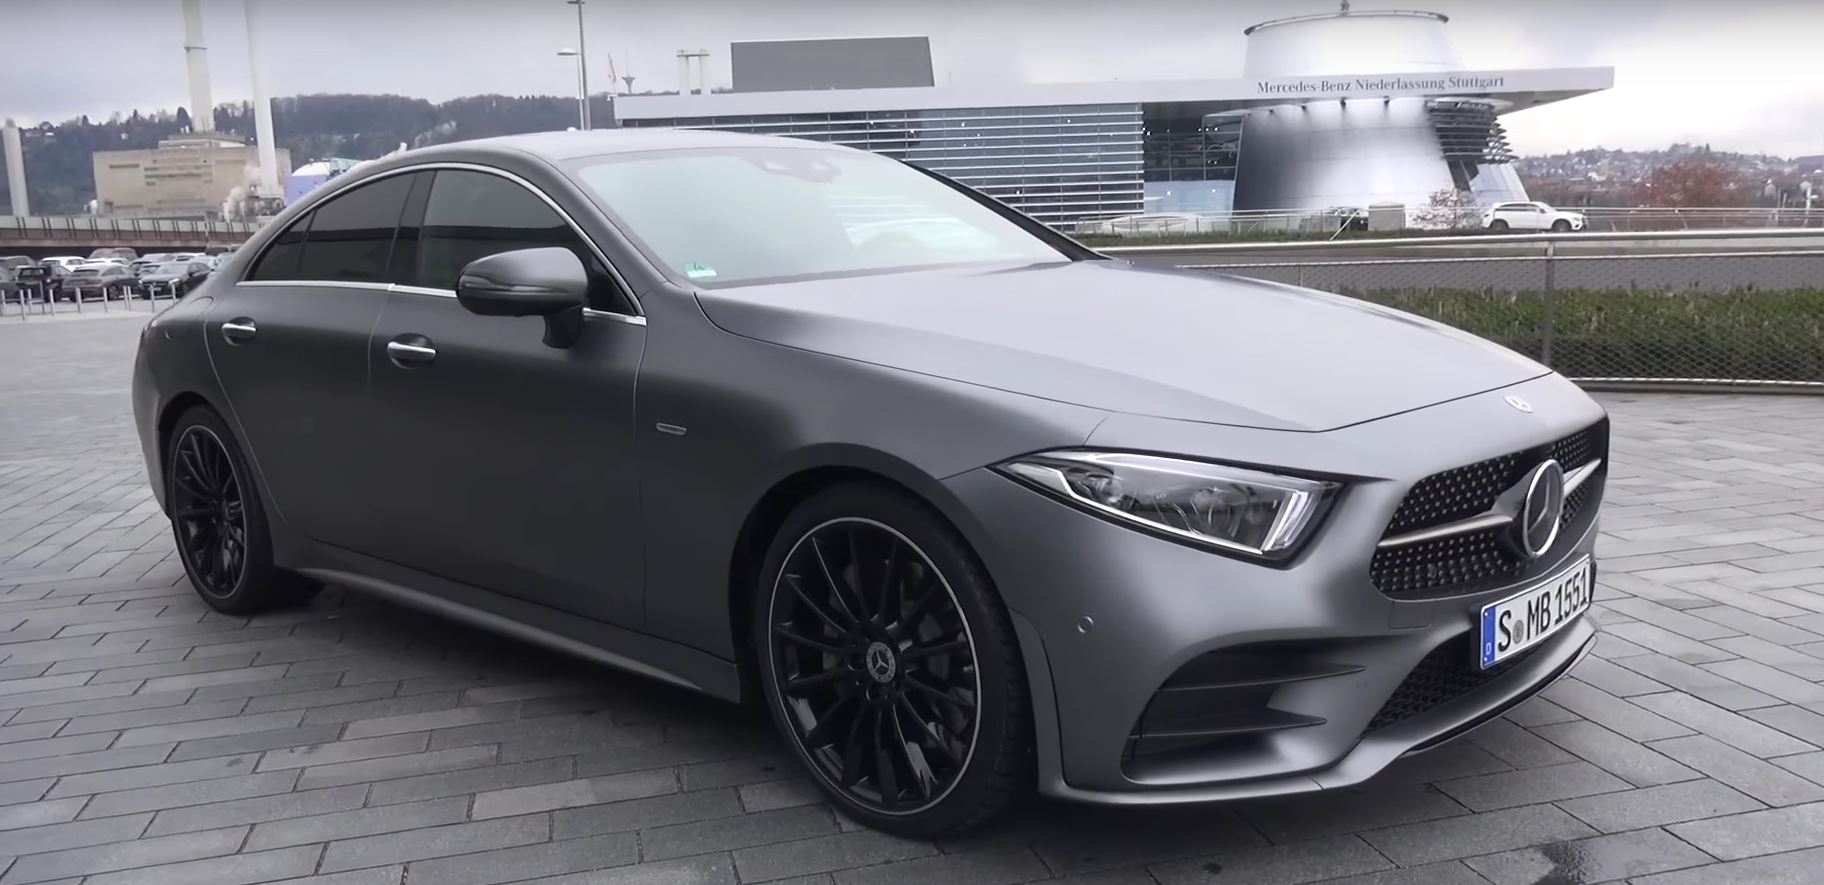 here 39 s a 2019 mercedes cls class walkaround from shmee150. Black Bedroom Furniture Sets. Home Design Ideas